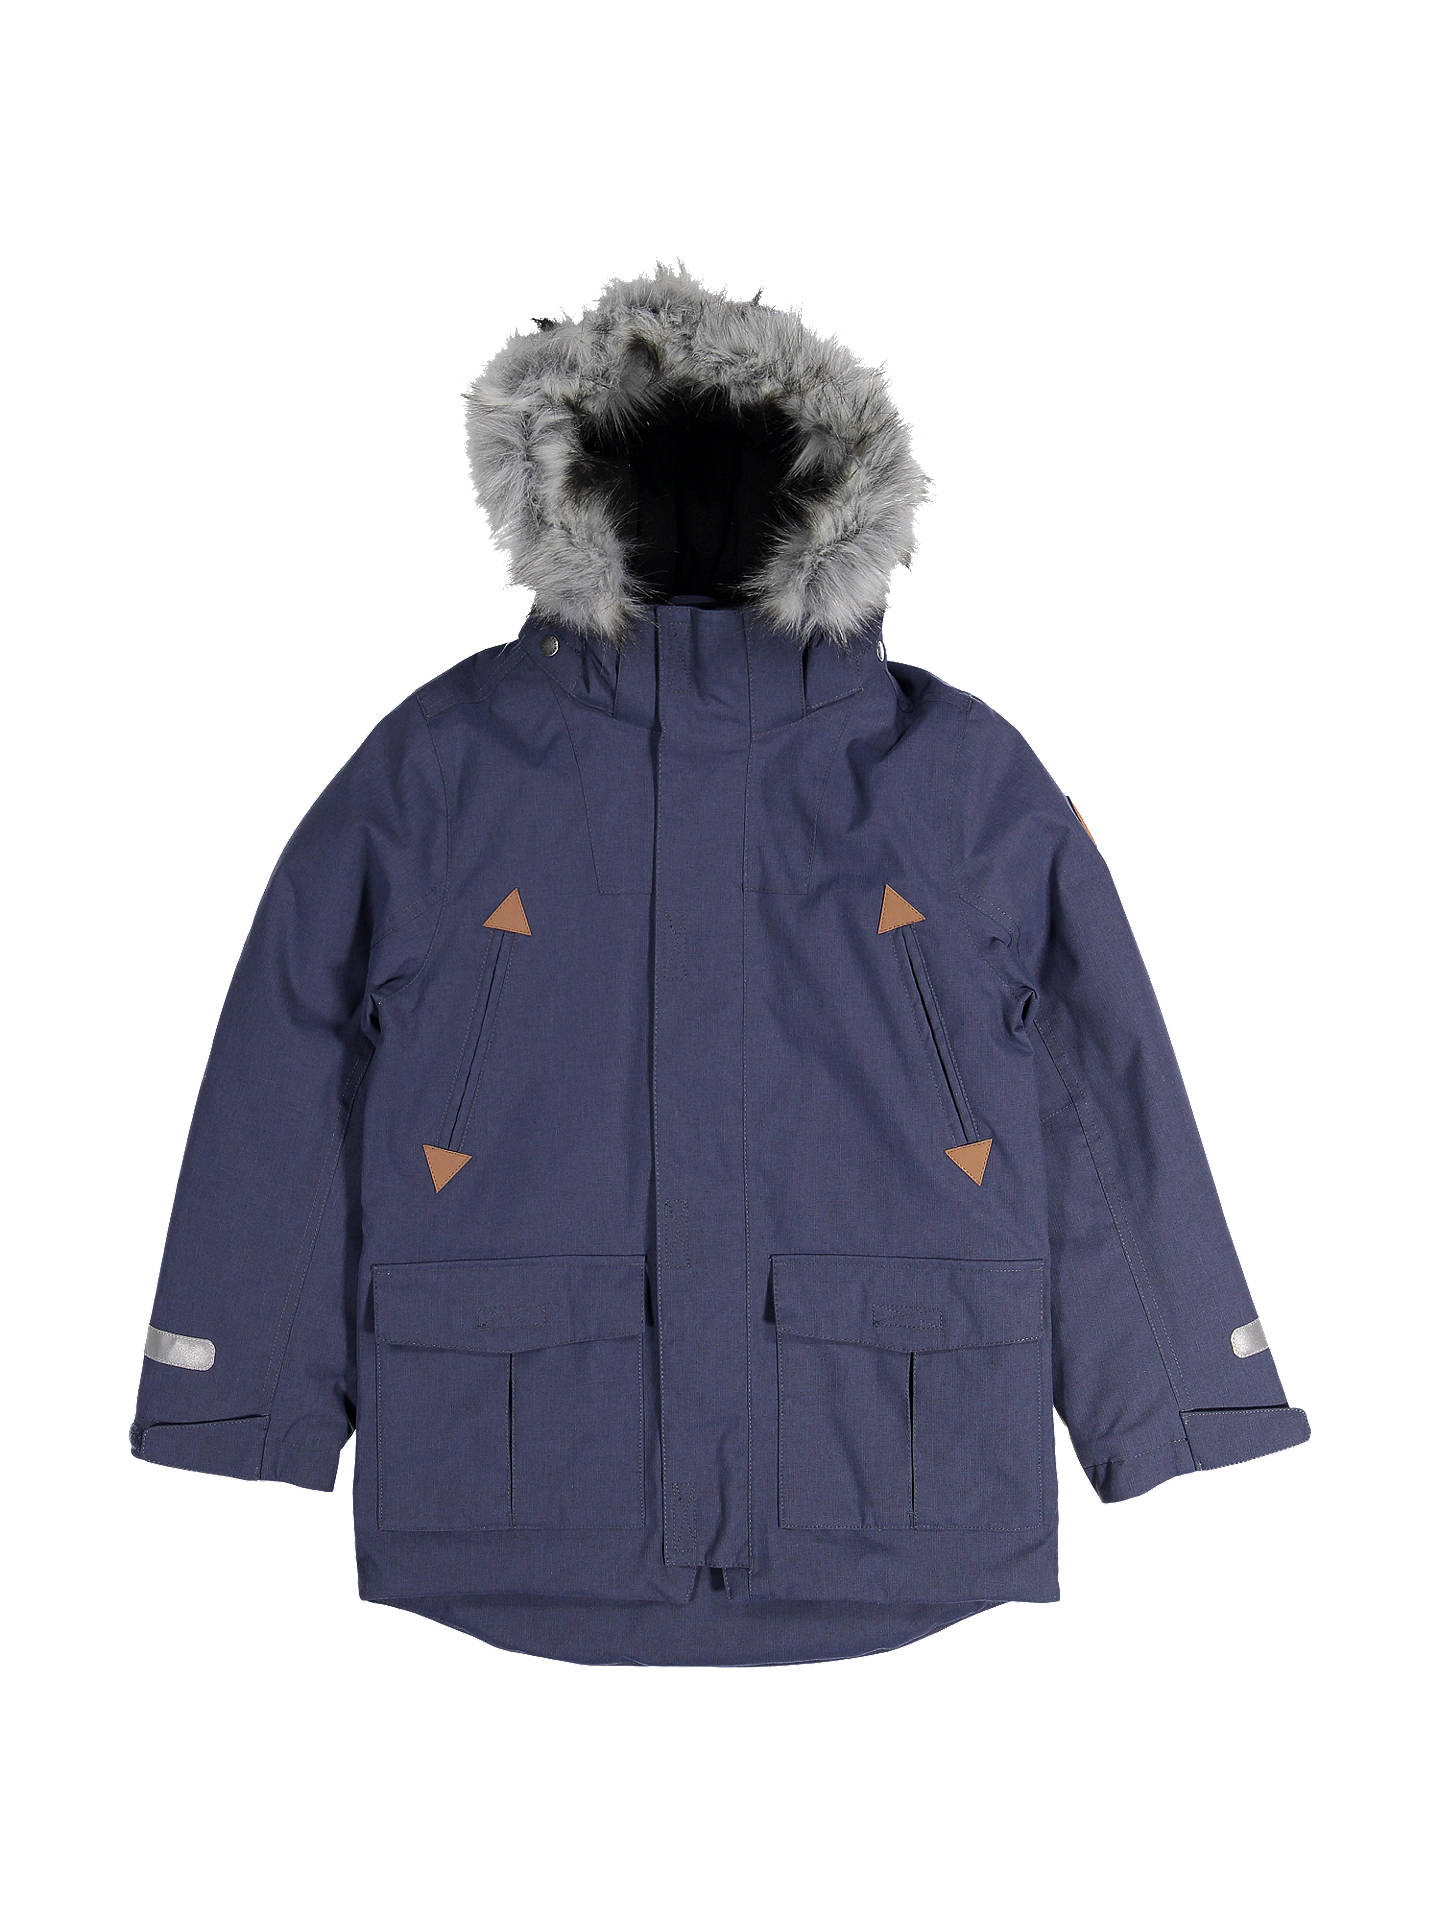 efa293aeb Polarn O. Pyret Children s Parka Coat